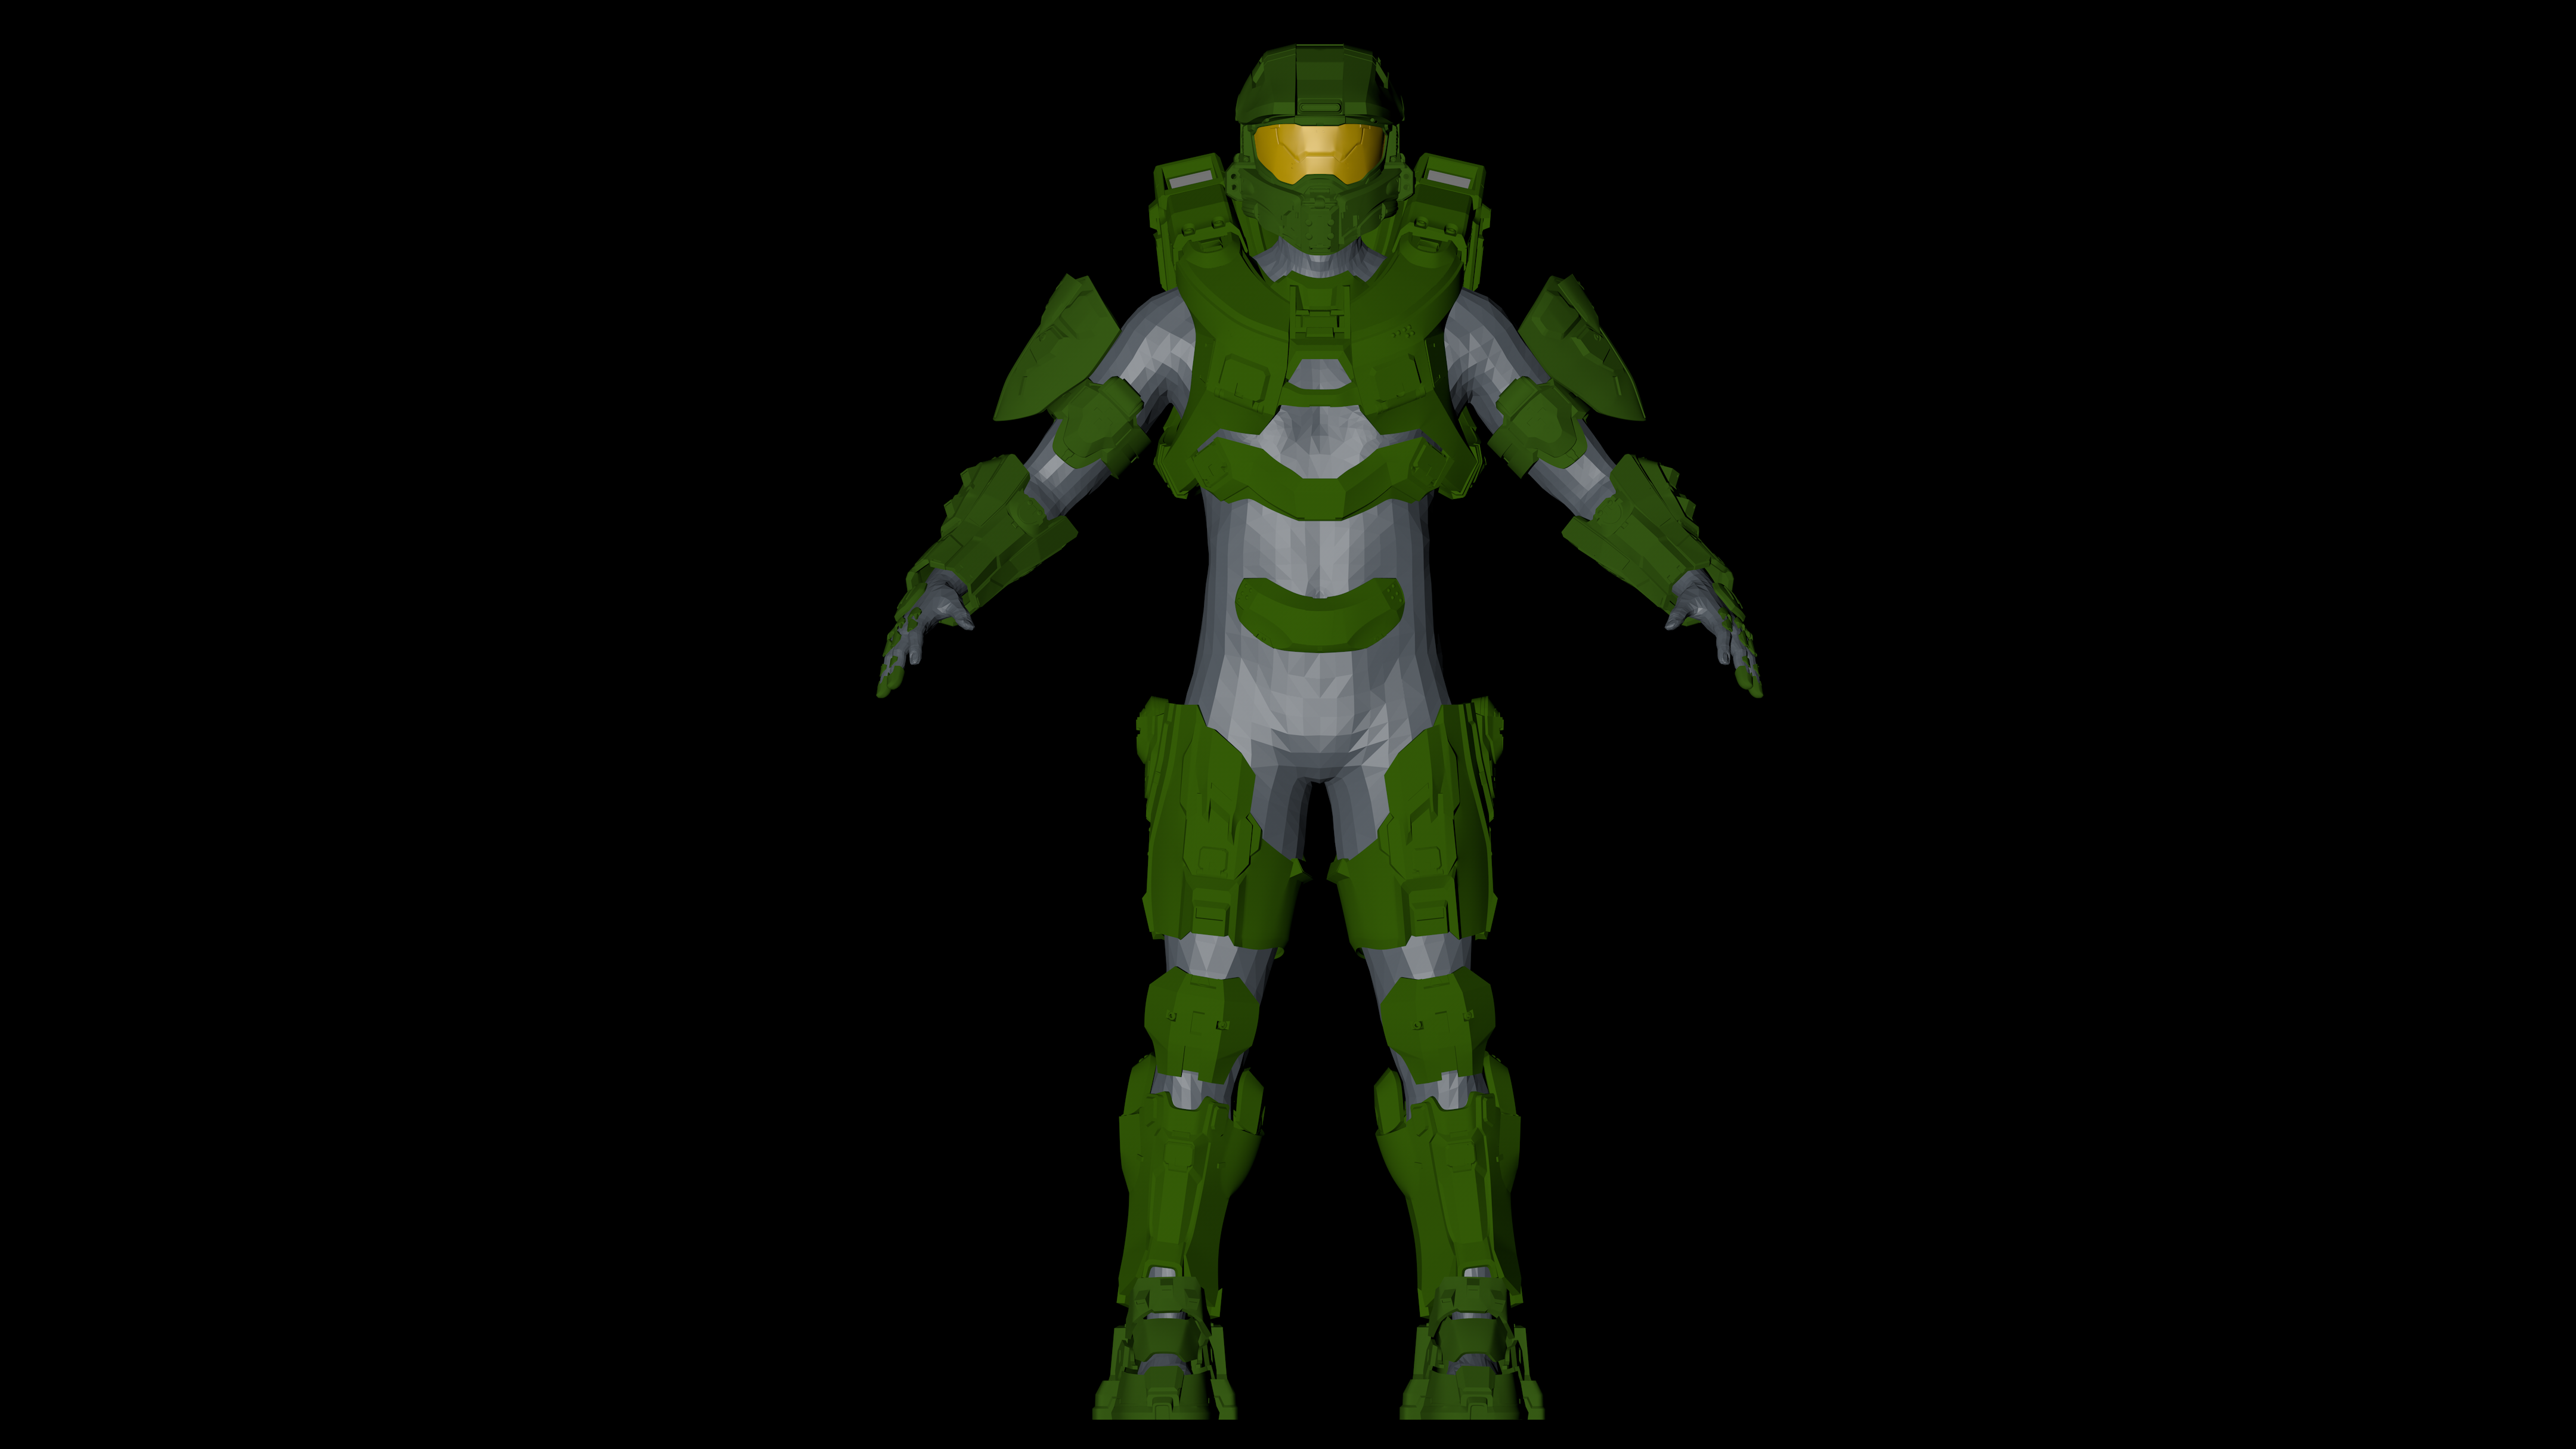 me with armor master chief.png